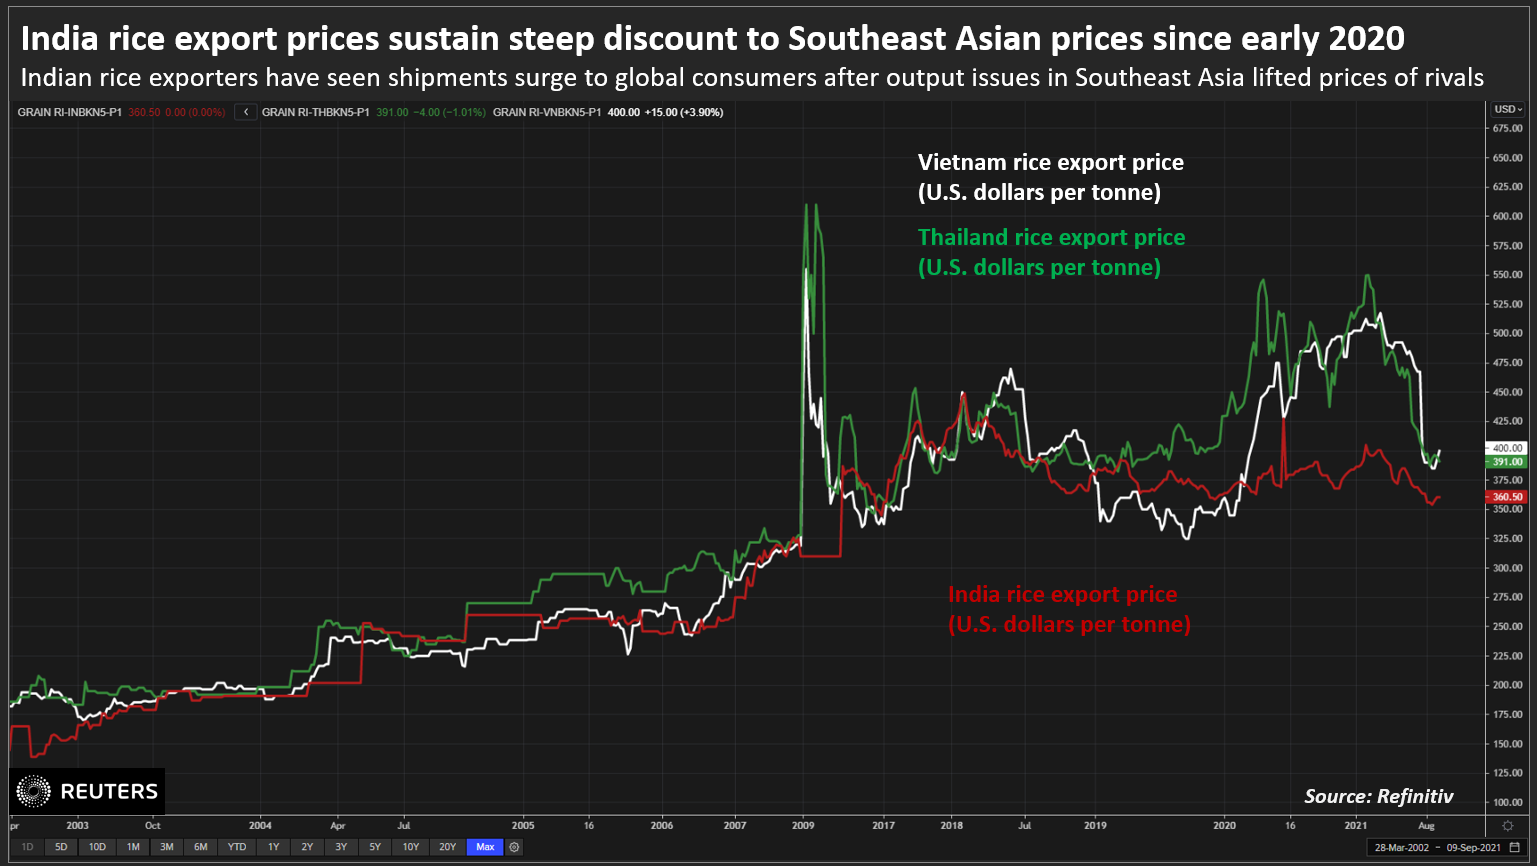 India rice export prices sustain steep discount to Southeast Asian prices since early 2020